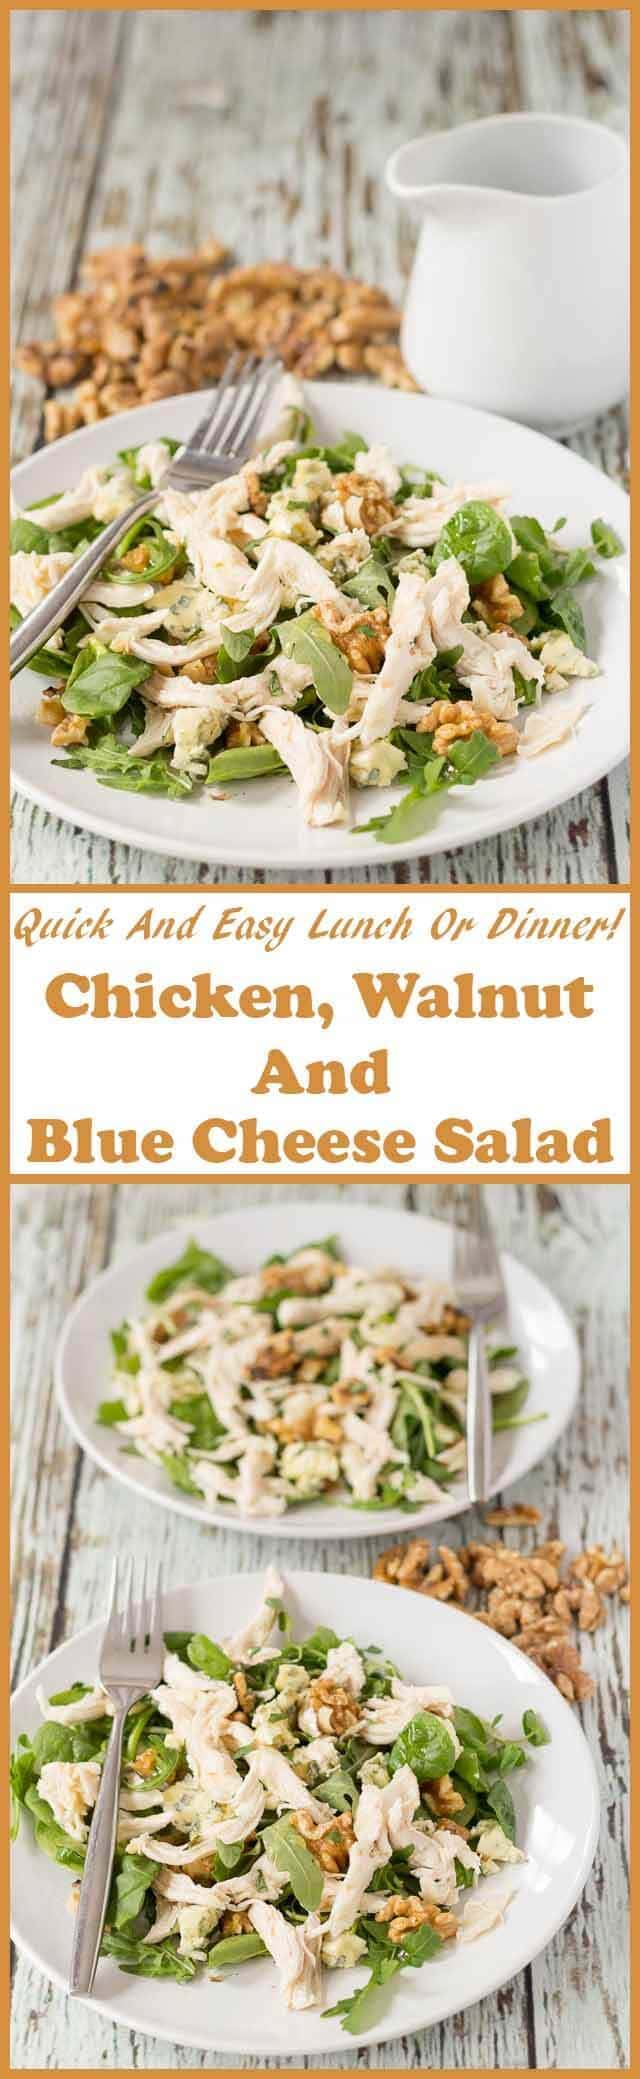 This chicken, walnut and blue cheese salad has loads of flavour and a wonderful crunch too. It's perfect for a really quick and easy lunch or weeknight dinner option!